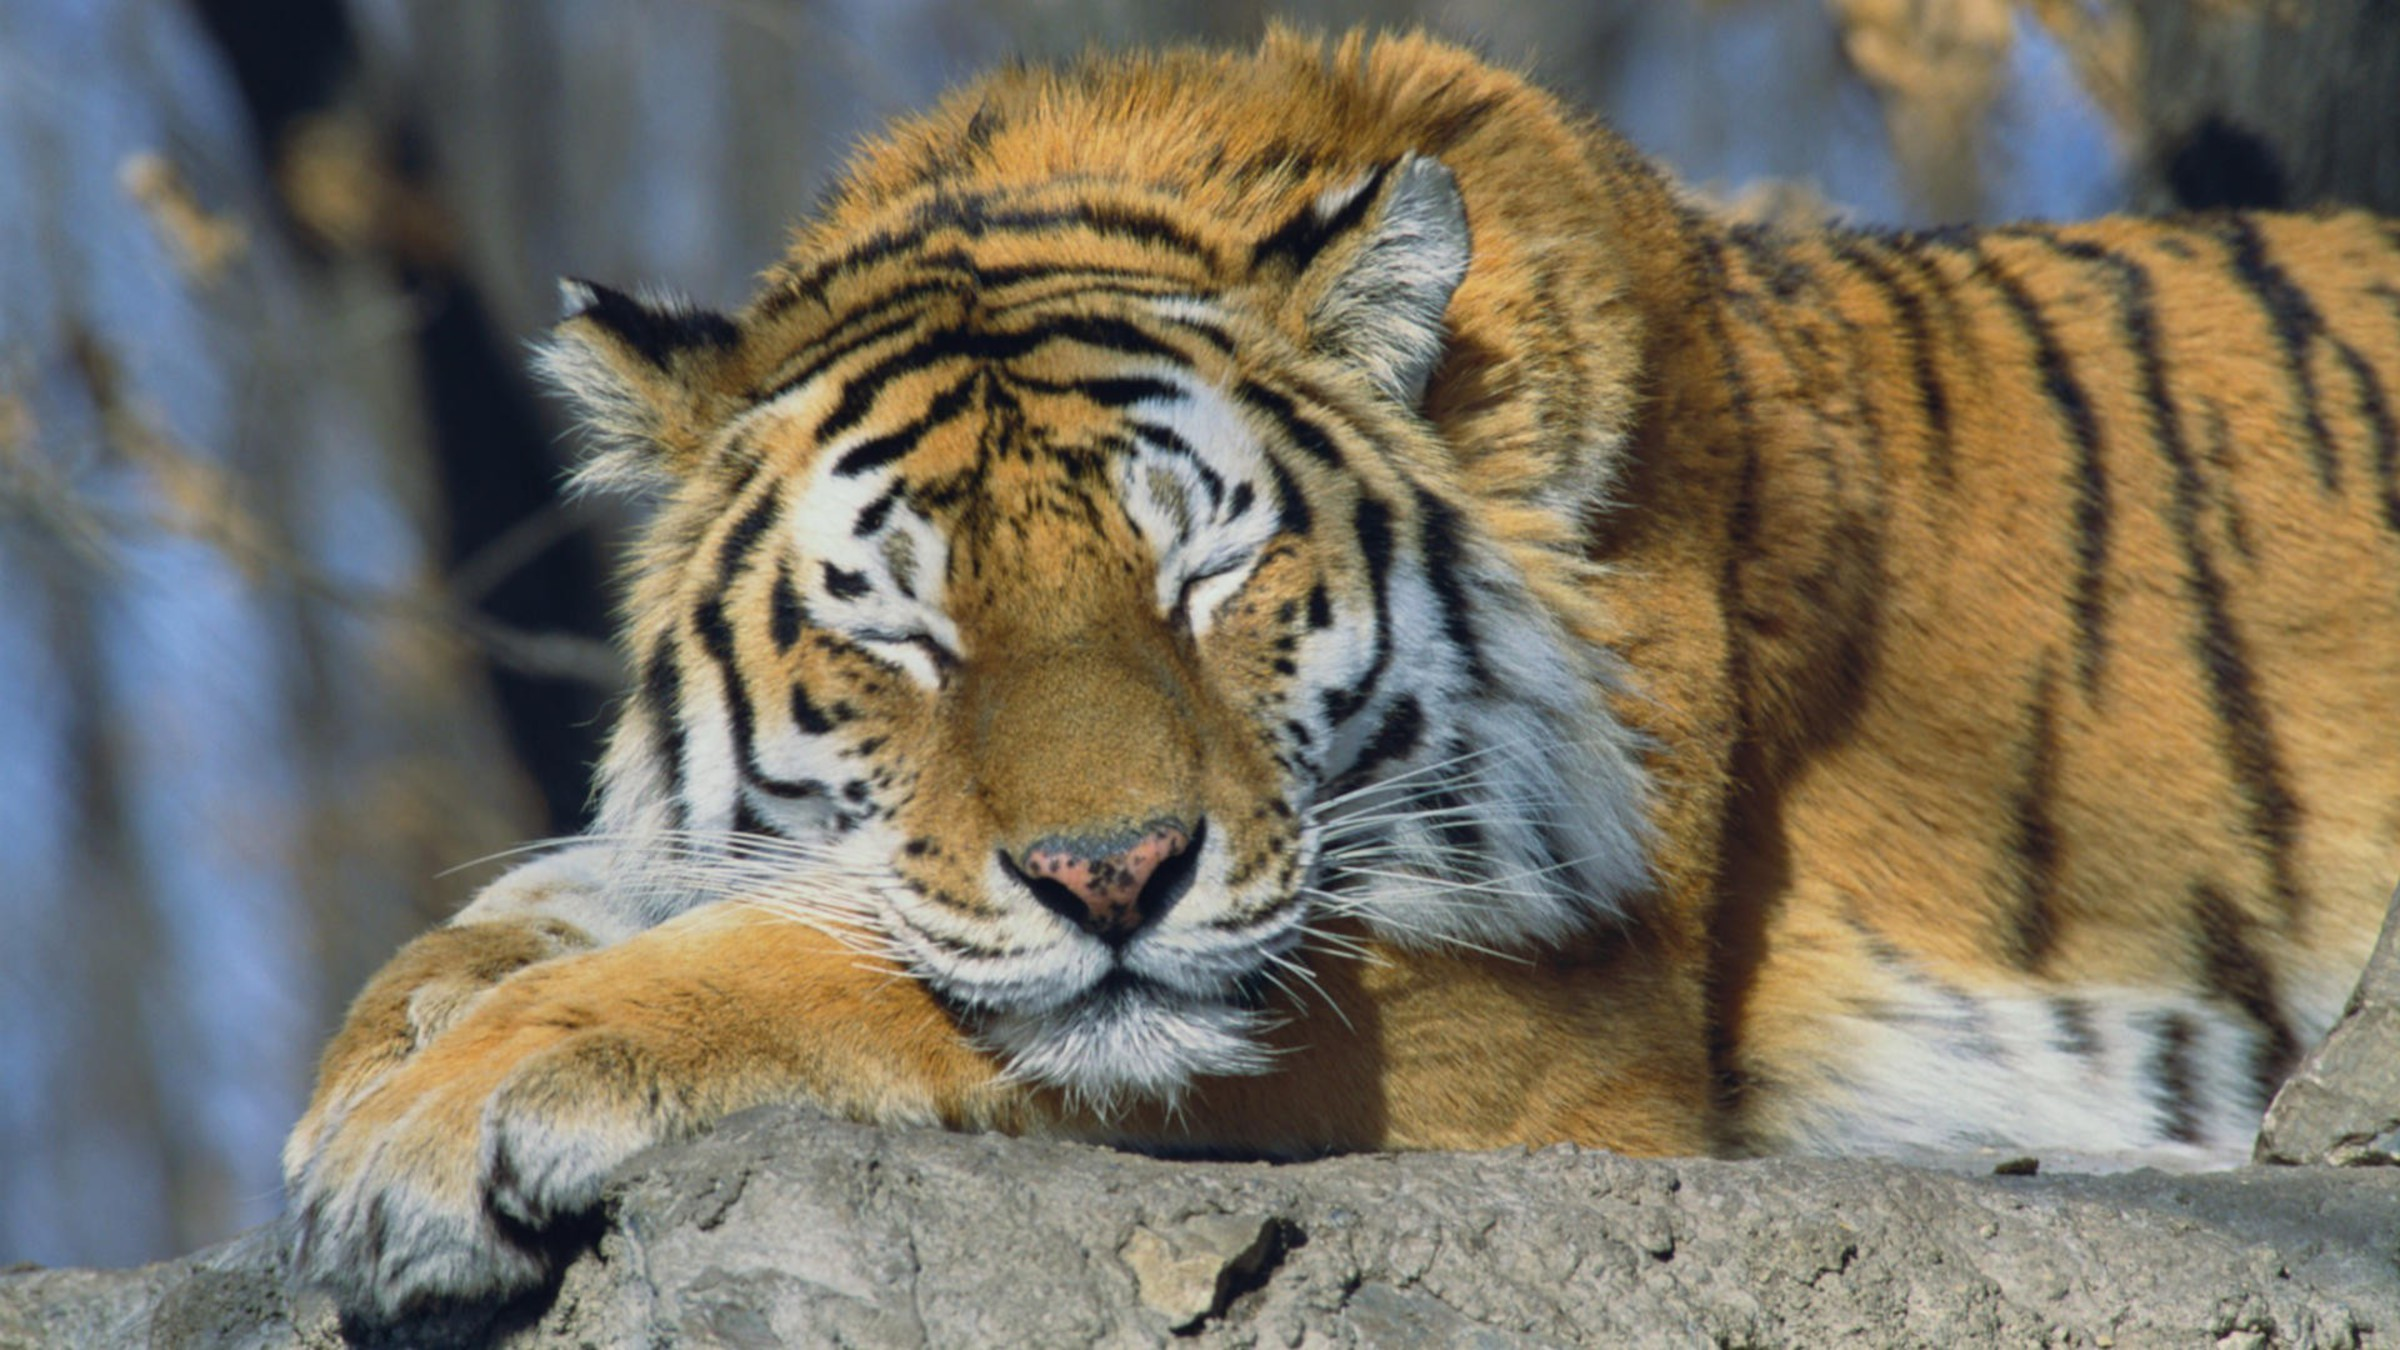 russia siberian tiger animals sleeping tigers wallpaper